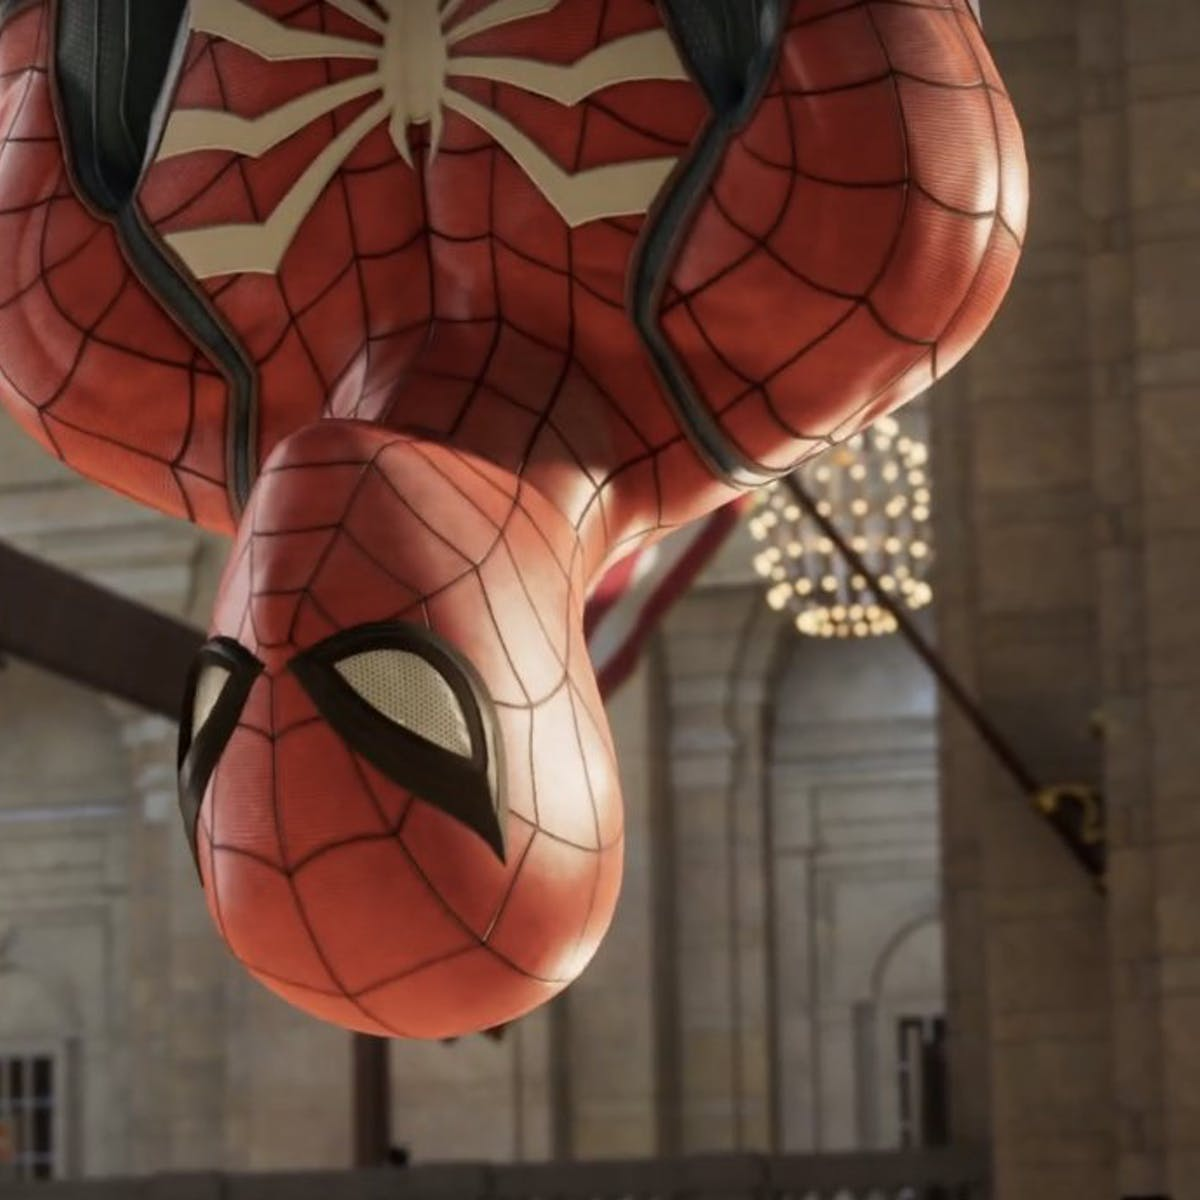 Spider-Man' PS4 Easter Egg References the Dumbest Scene in